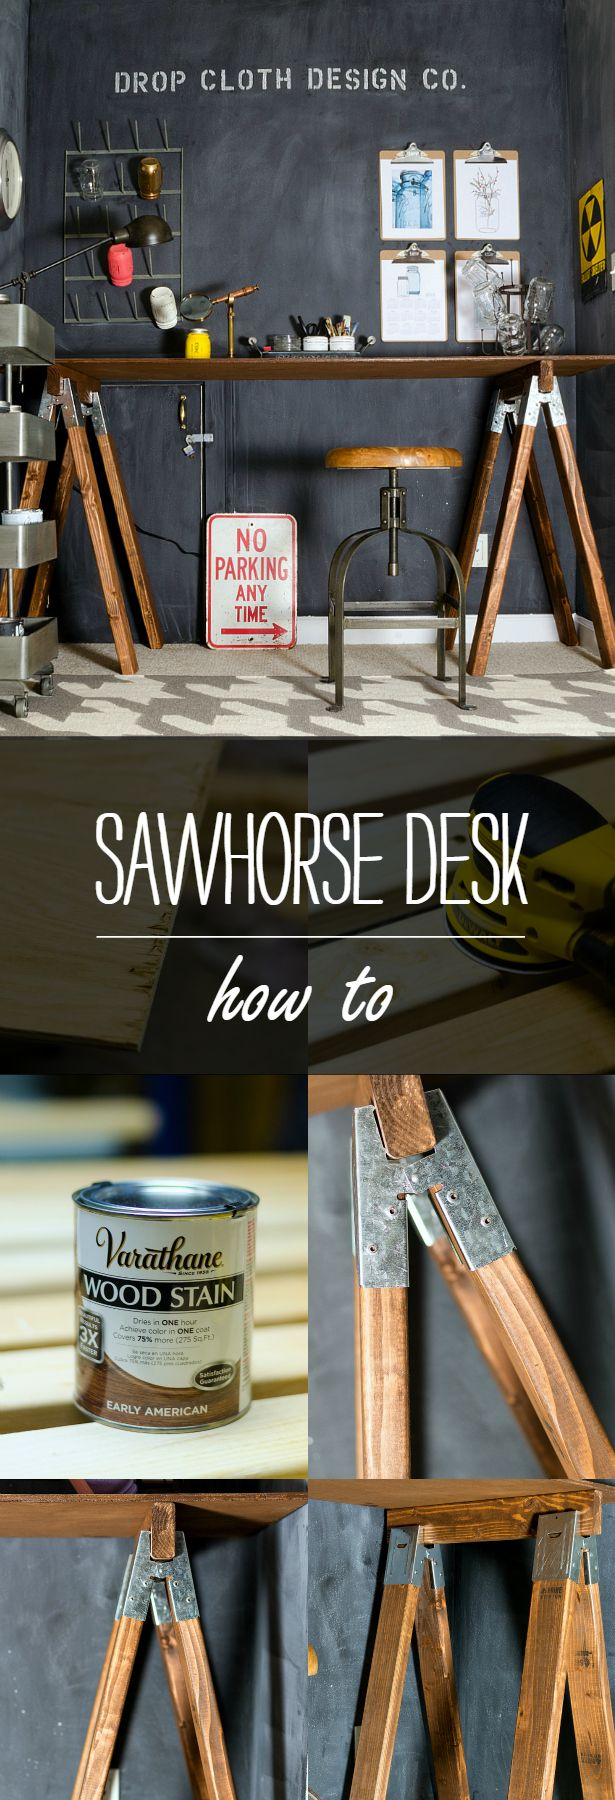 Saw Horse Desk How To - It All Started With Paint